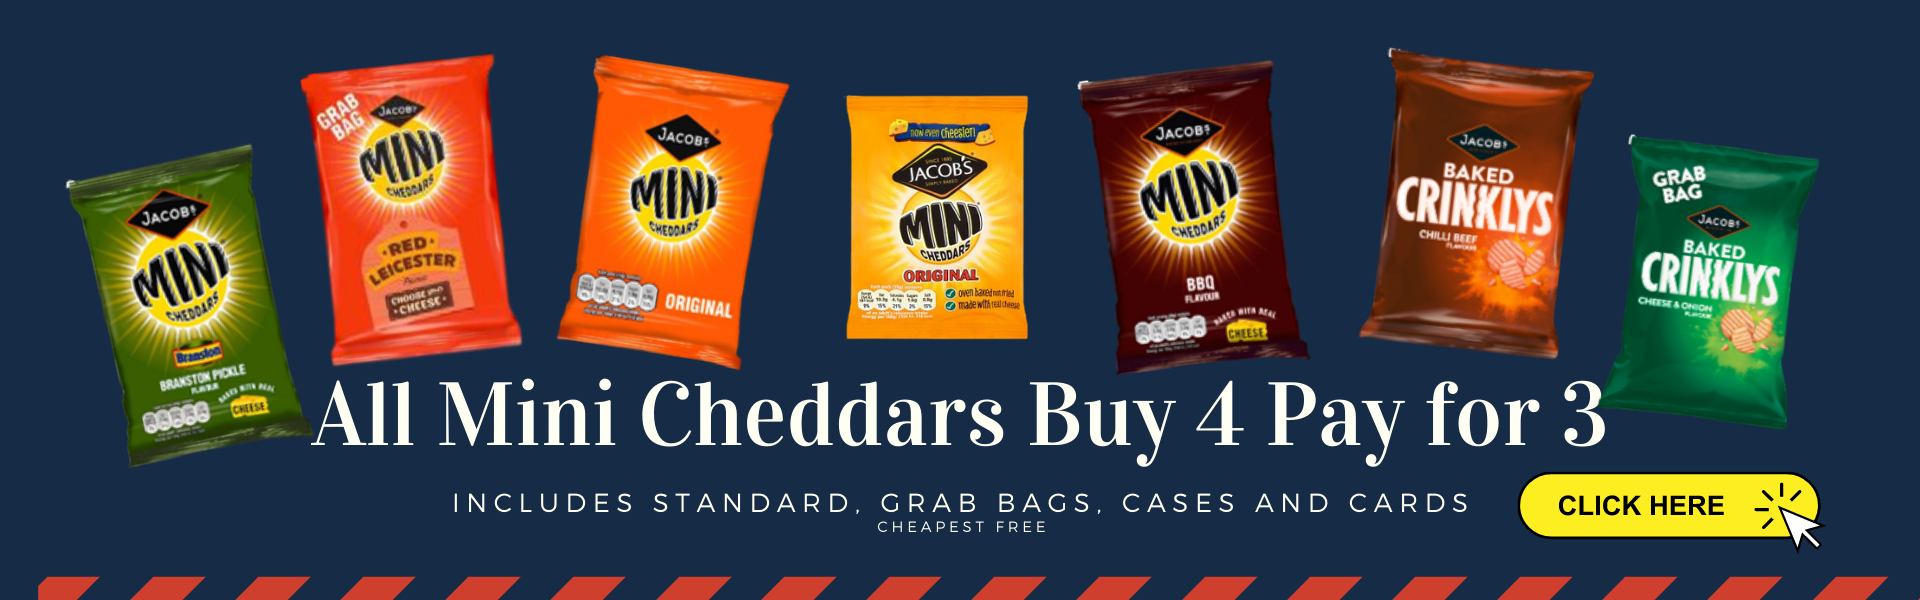 mini cheddars buy 4 pay for 3